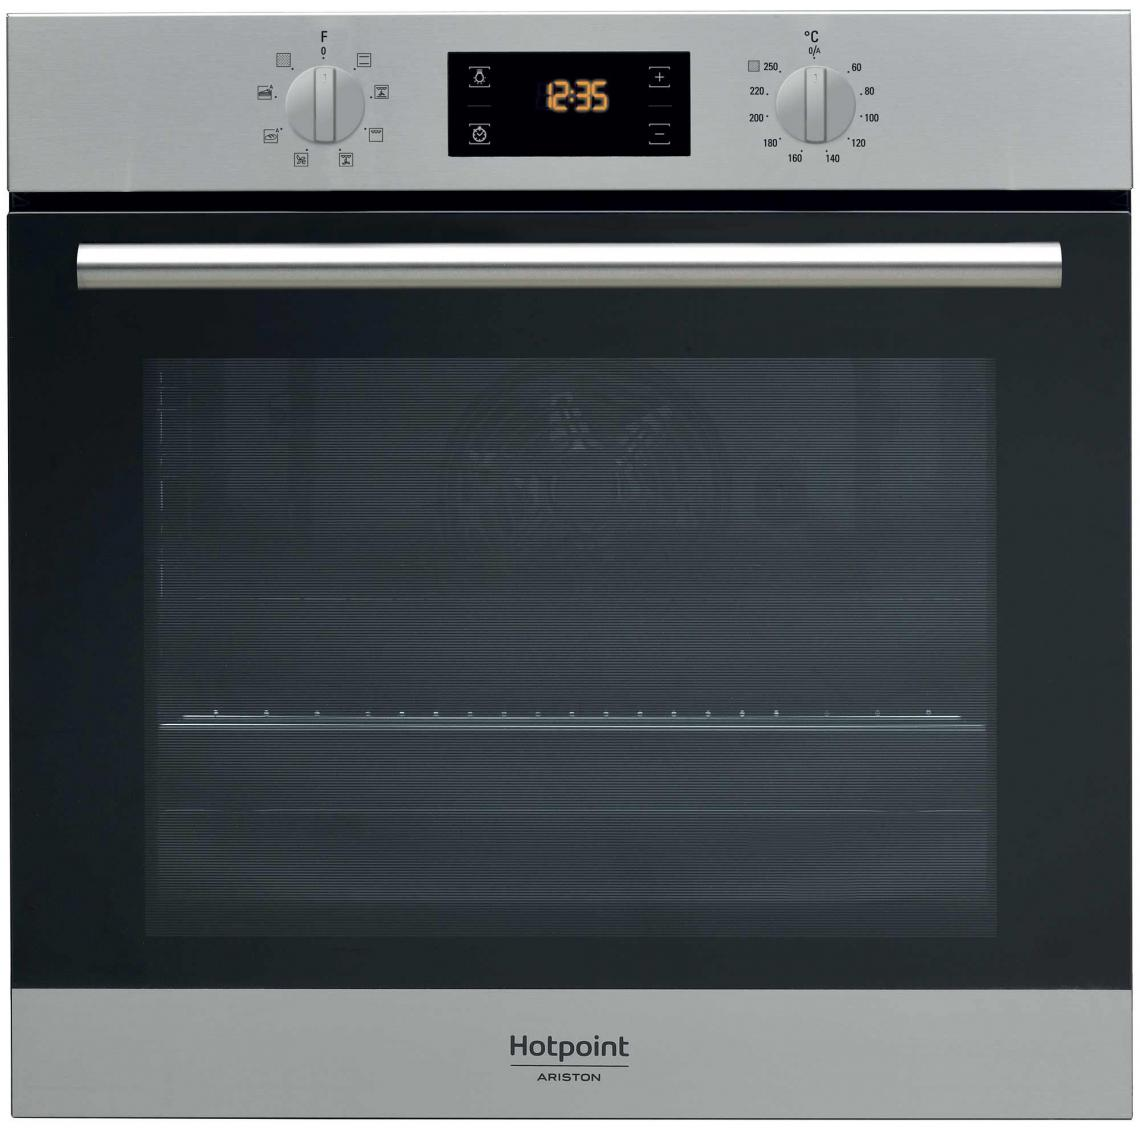 Hotpoint Four encastrable Multifonction 66L HOTPOINT ARISTON 3600W 60cm A, FA 2540 PIXHA